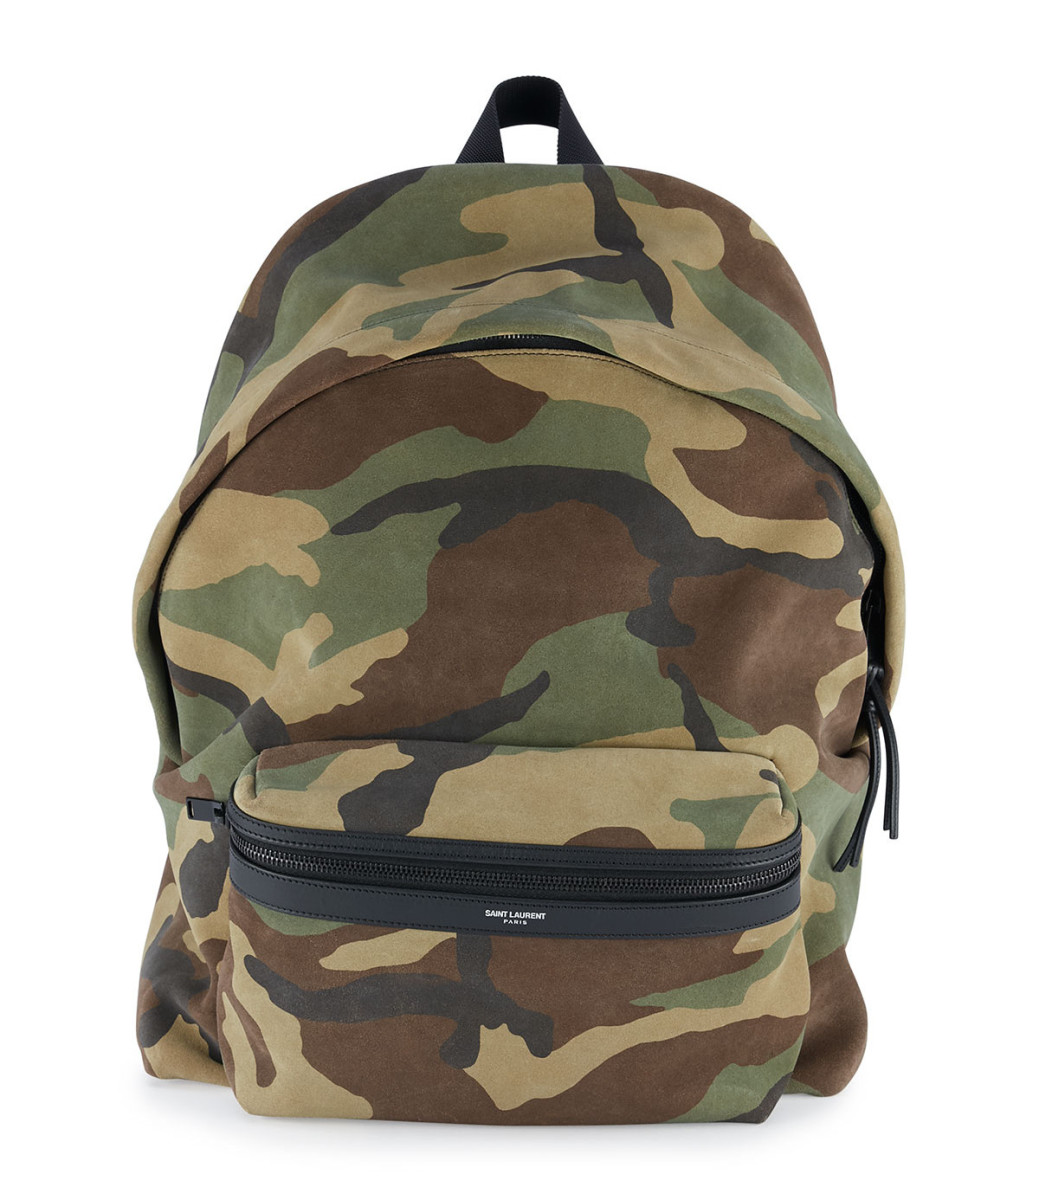 freshness-finds-luxury-camo-backpack-02.jpg